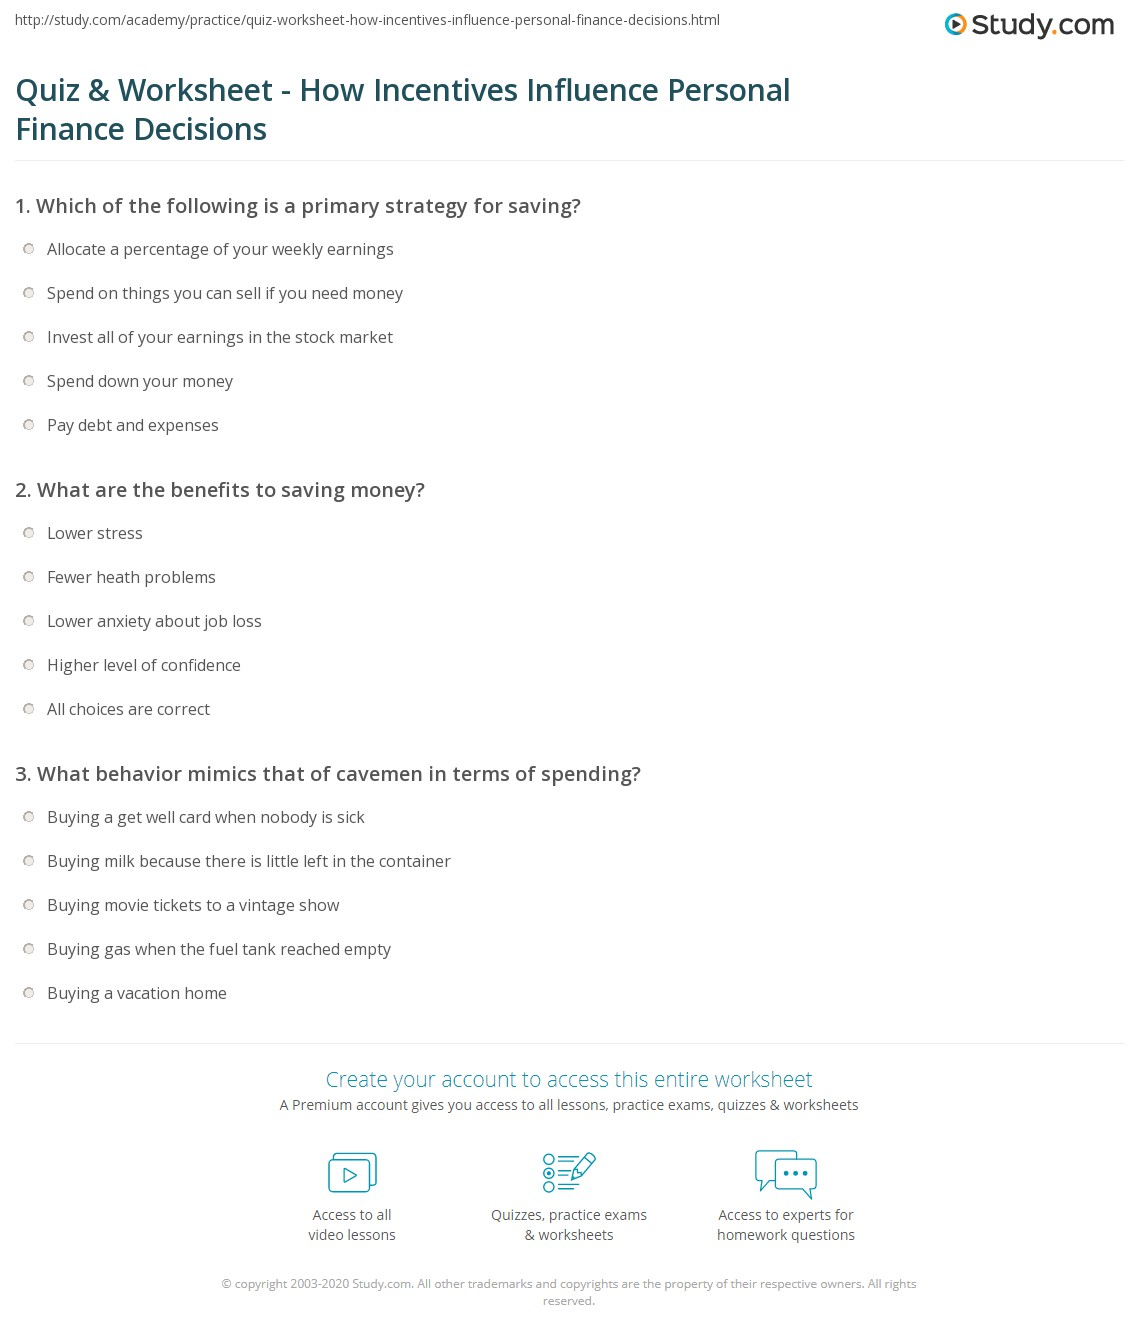 quiz worksheet how incentives influence personal finance